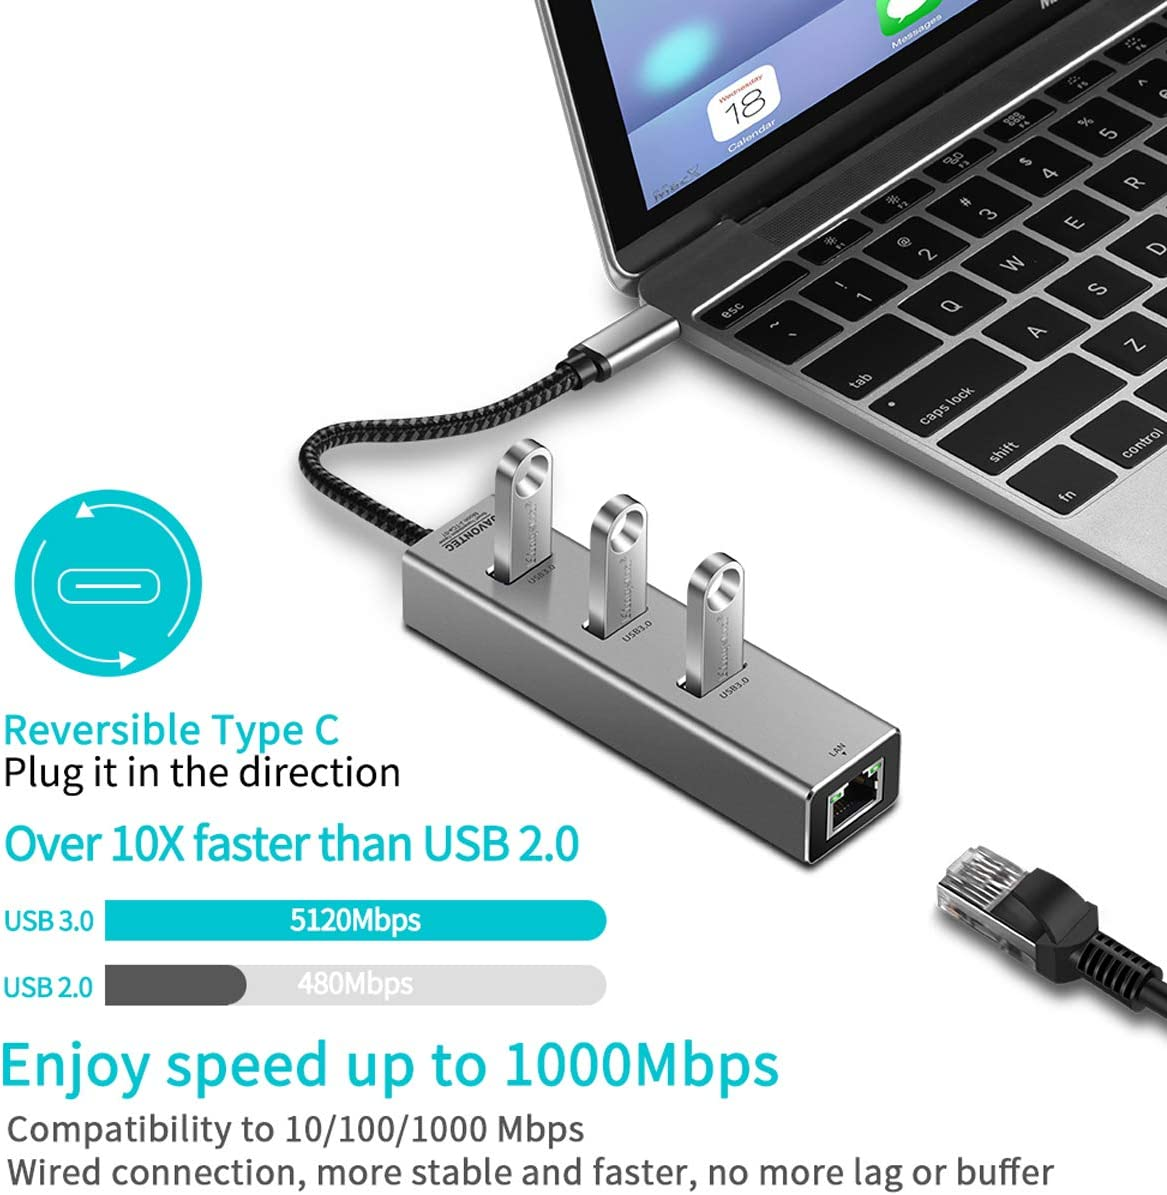 HP Spectre and More JAVONTEC USB C to Ethernet Adapter Surface Go USB 3.1 Type-C to 3 Port USB 3.0 Hub with RJ45 10//100//1000 Gigabit Ethernet LAN Wired Network Converter Compatible MacBook